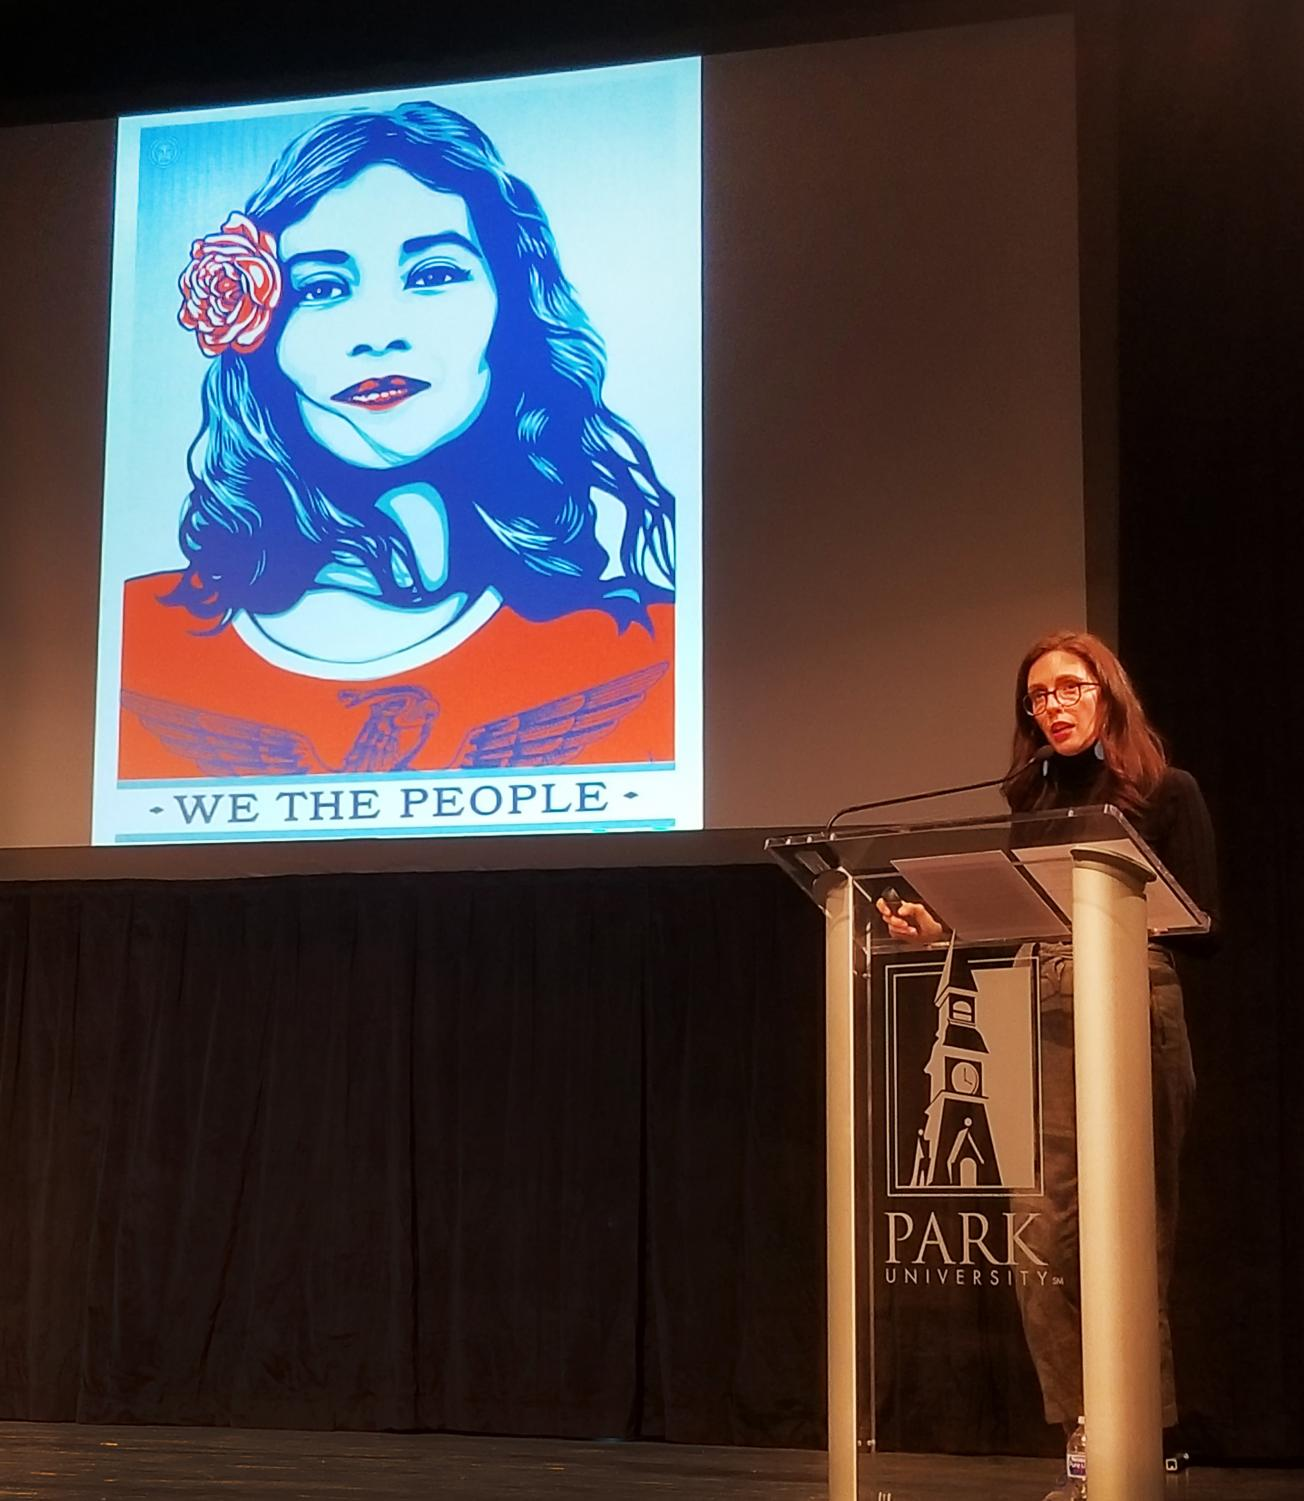 Mendoza speaking about the influence art had on the Women's March on Washington D.C.